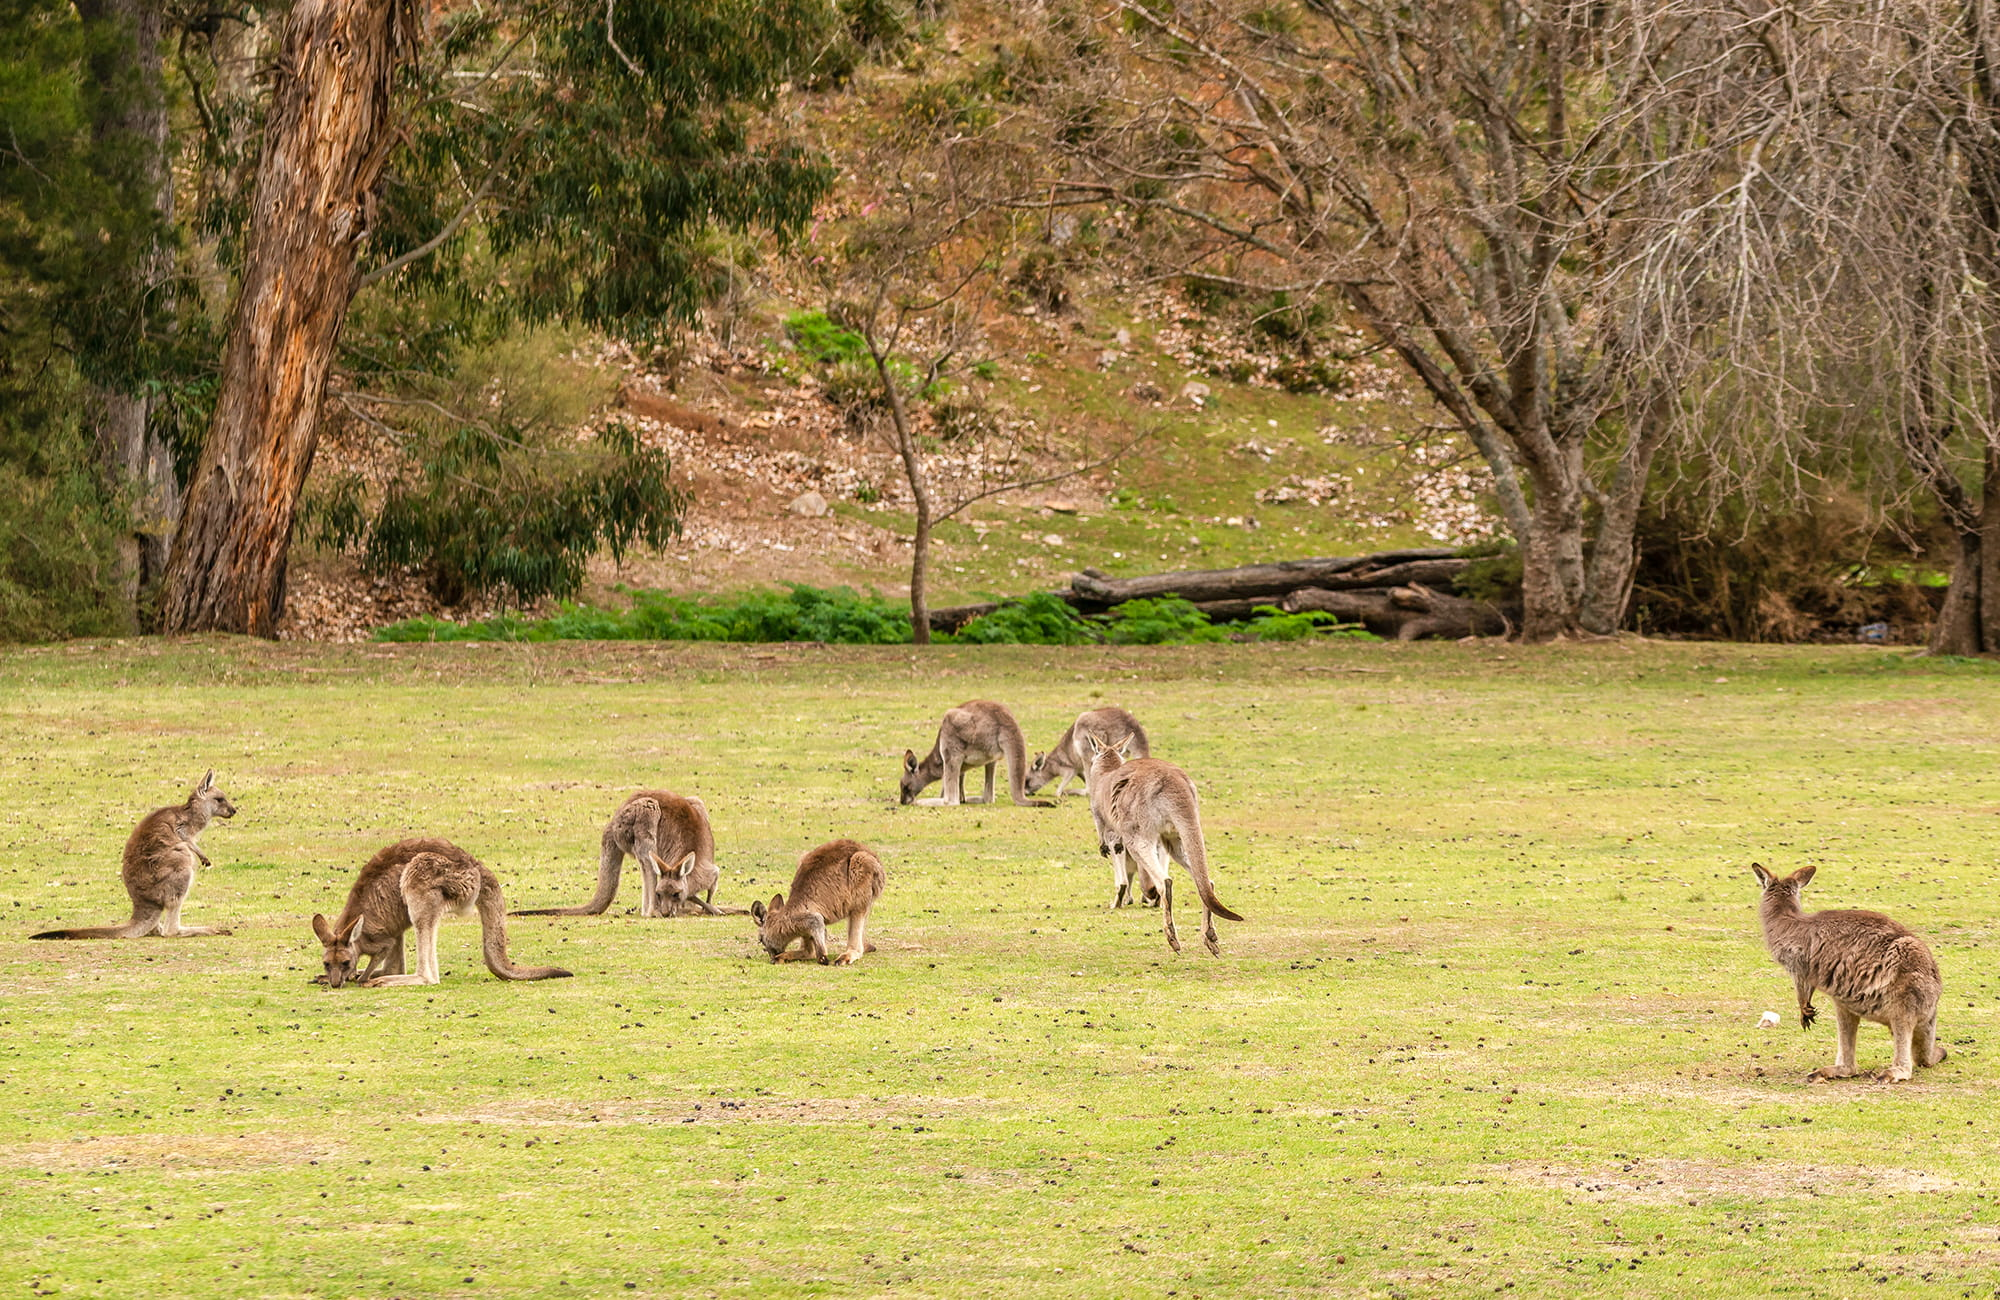 Kangaroos feeding on grass at Wombeyan Caves campground. Photo: OEH/John Spencer